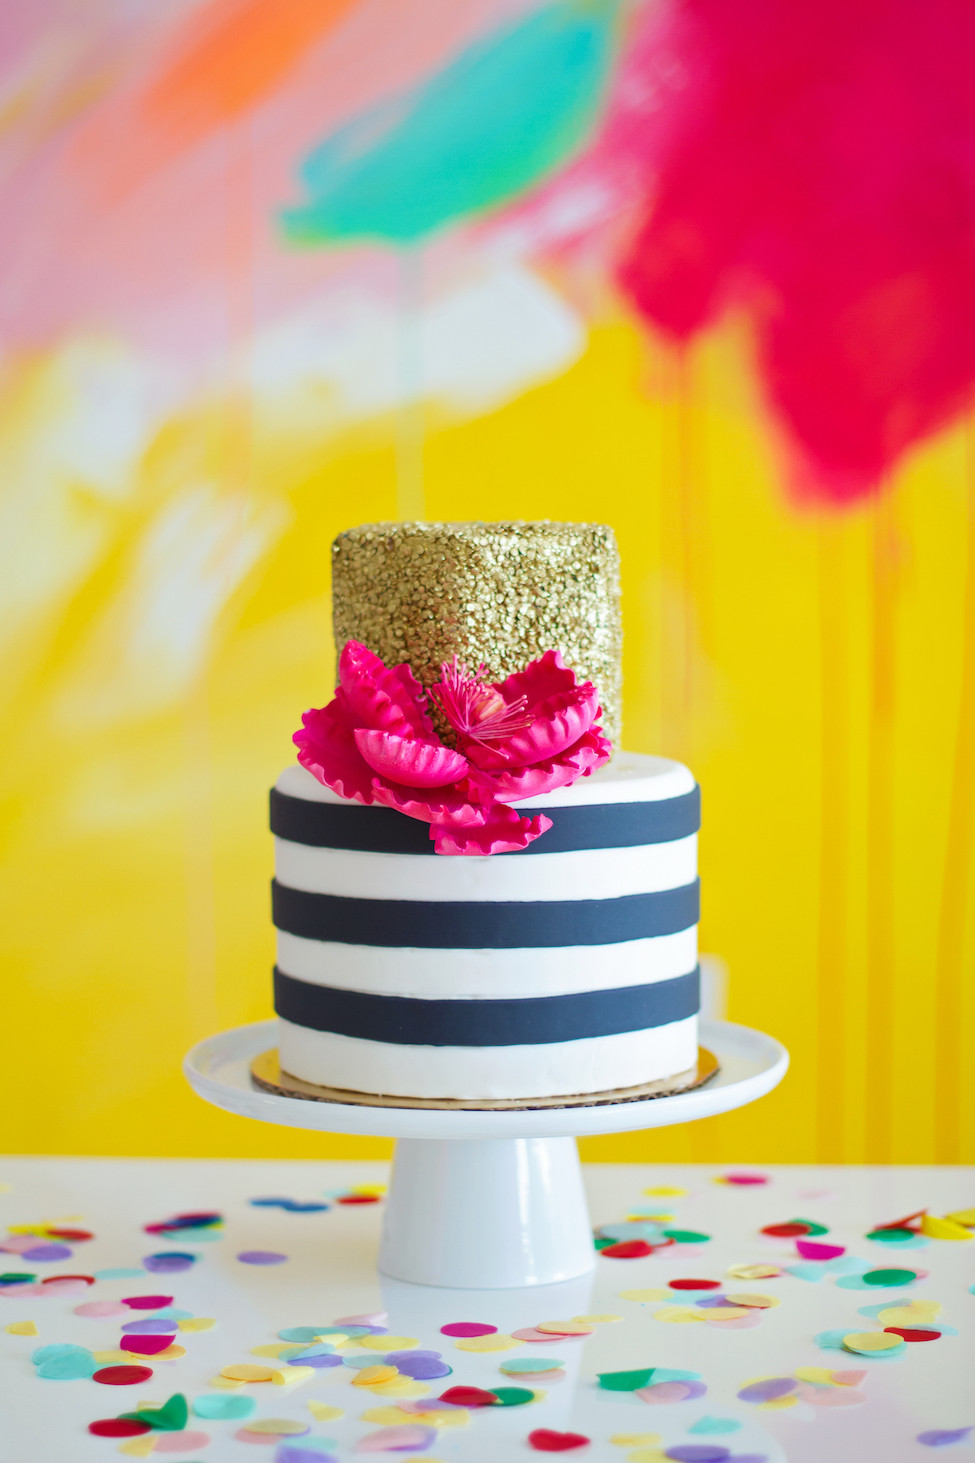 Birthday Cakes Houston  A Guide to Houston s Best Birthday Cakes Carrie Colbert